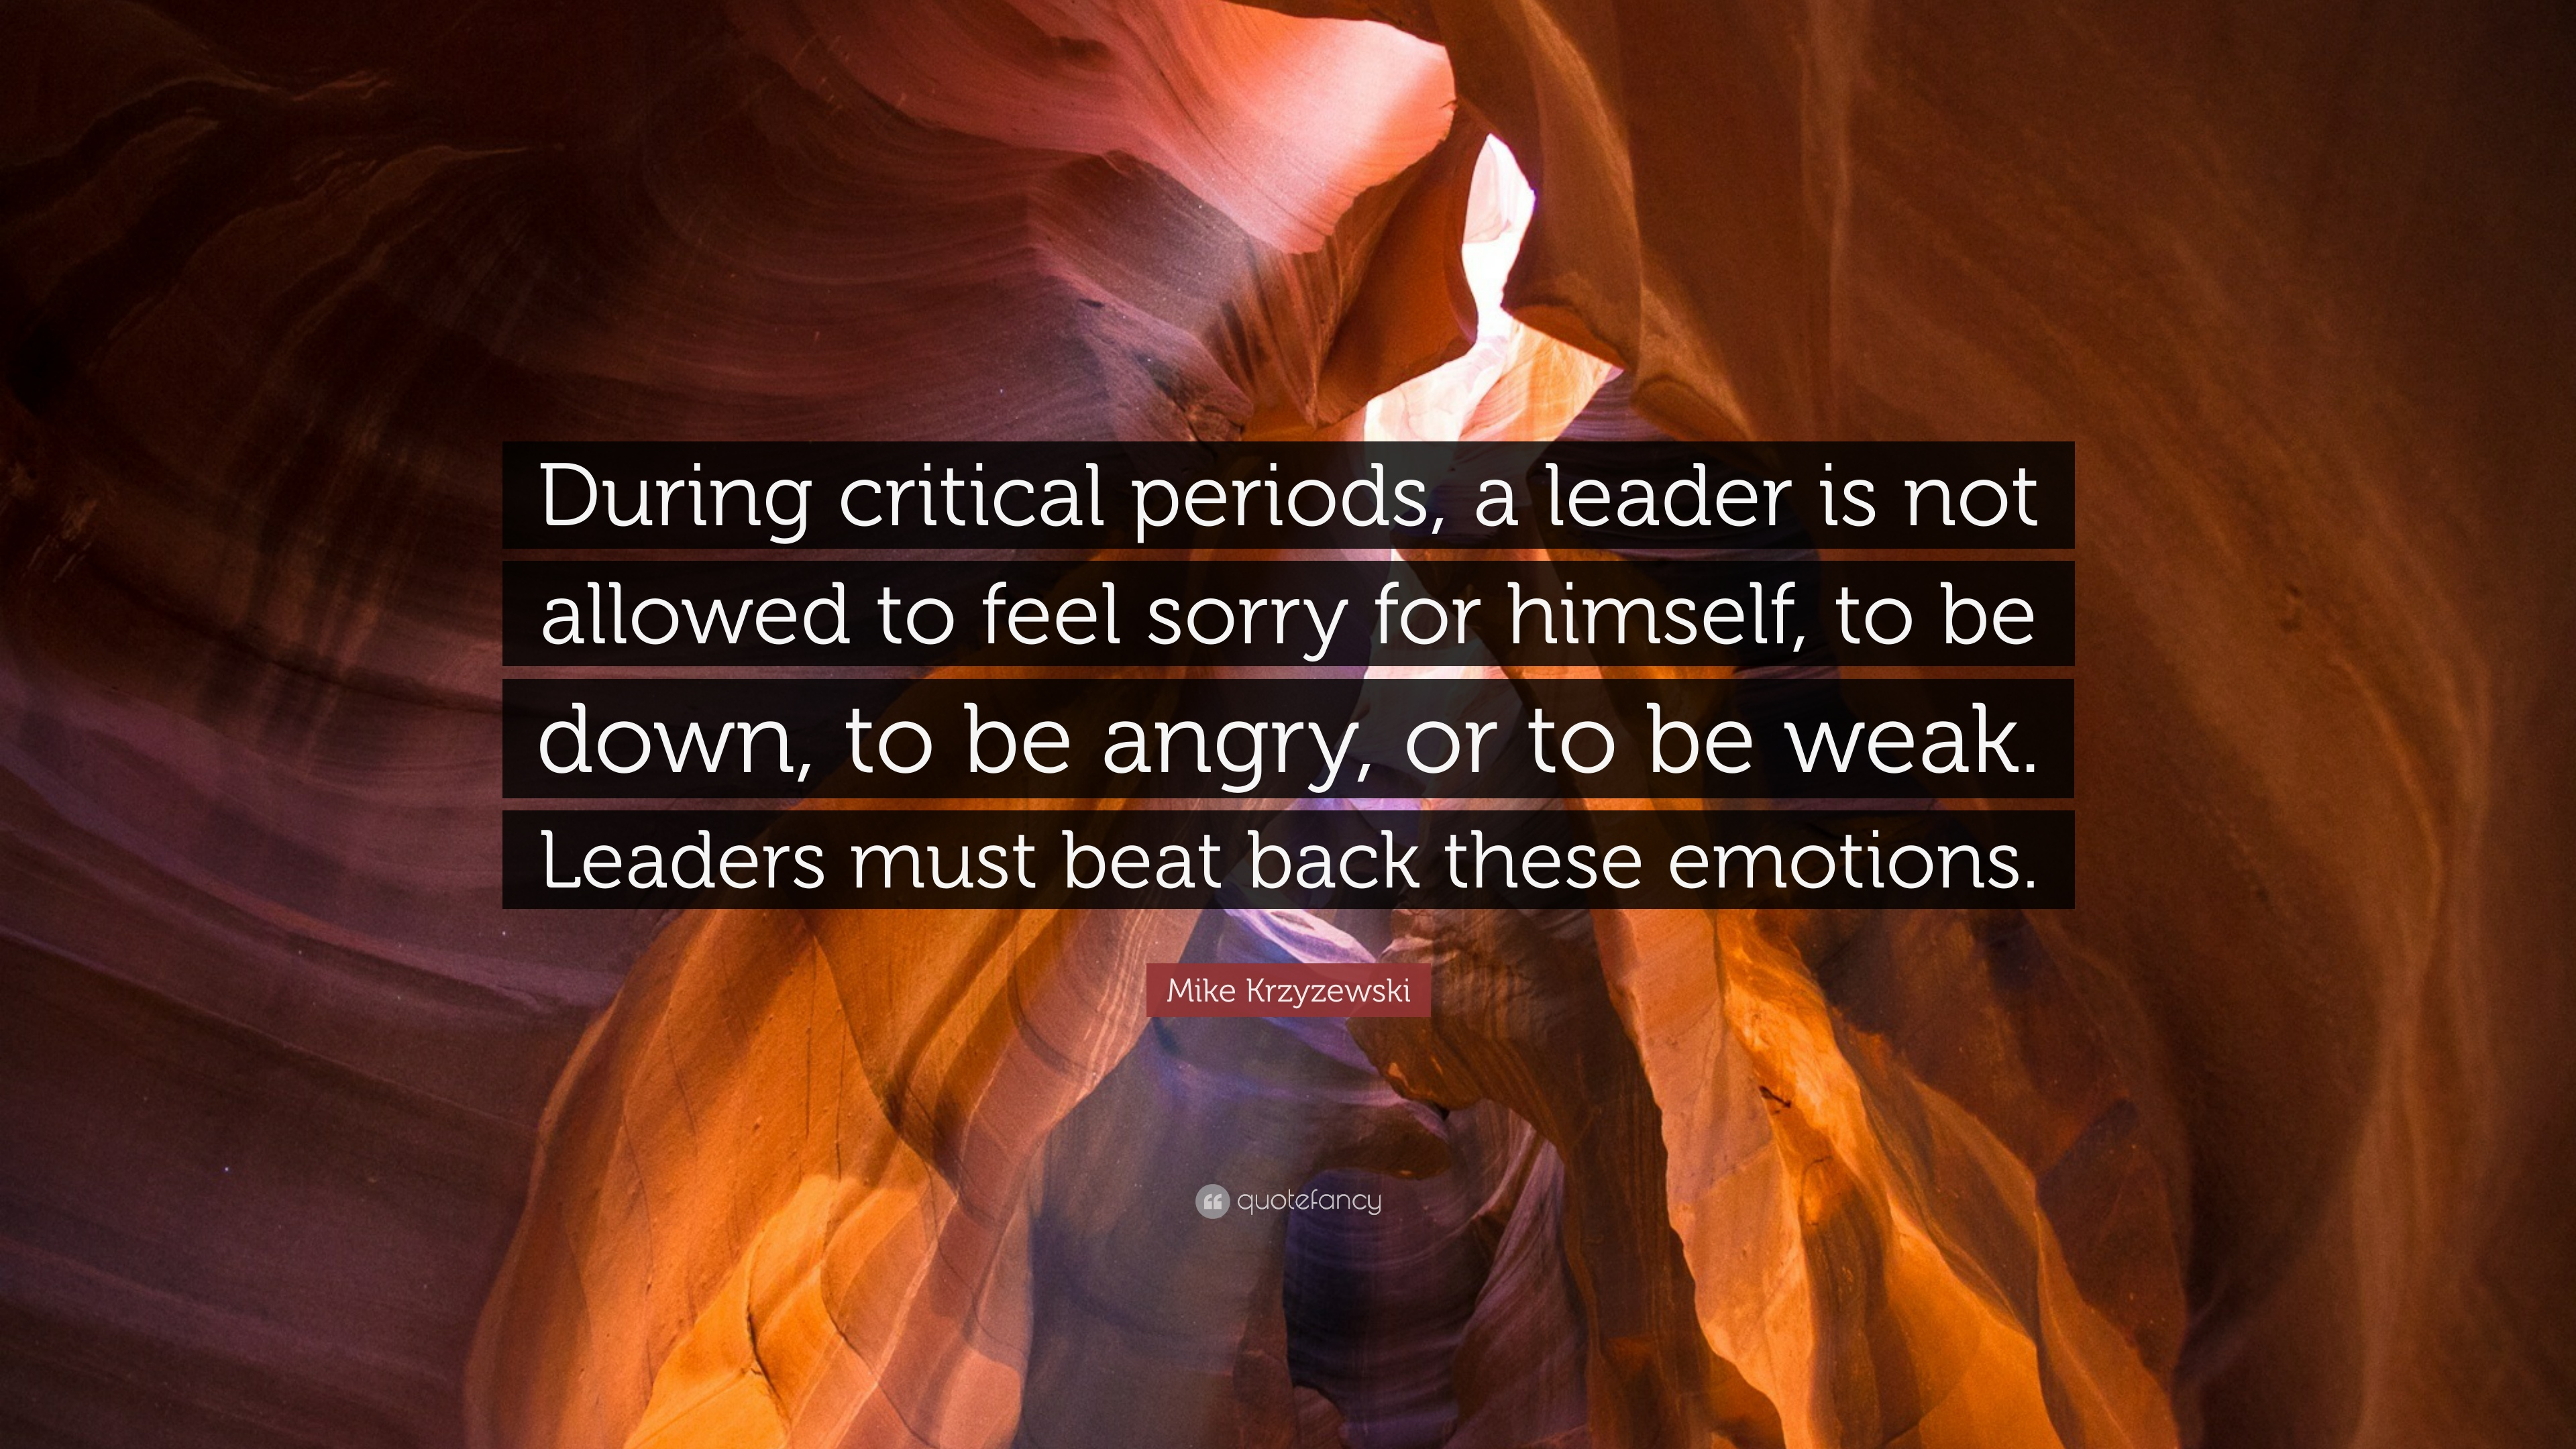 Beautiful Mike Krzyzewski Quote: U201cDuring Critical Periods, A Leader Is Not Allowed To  Feel